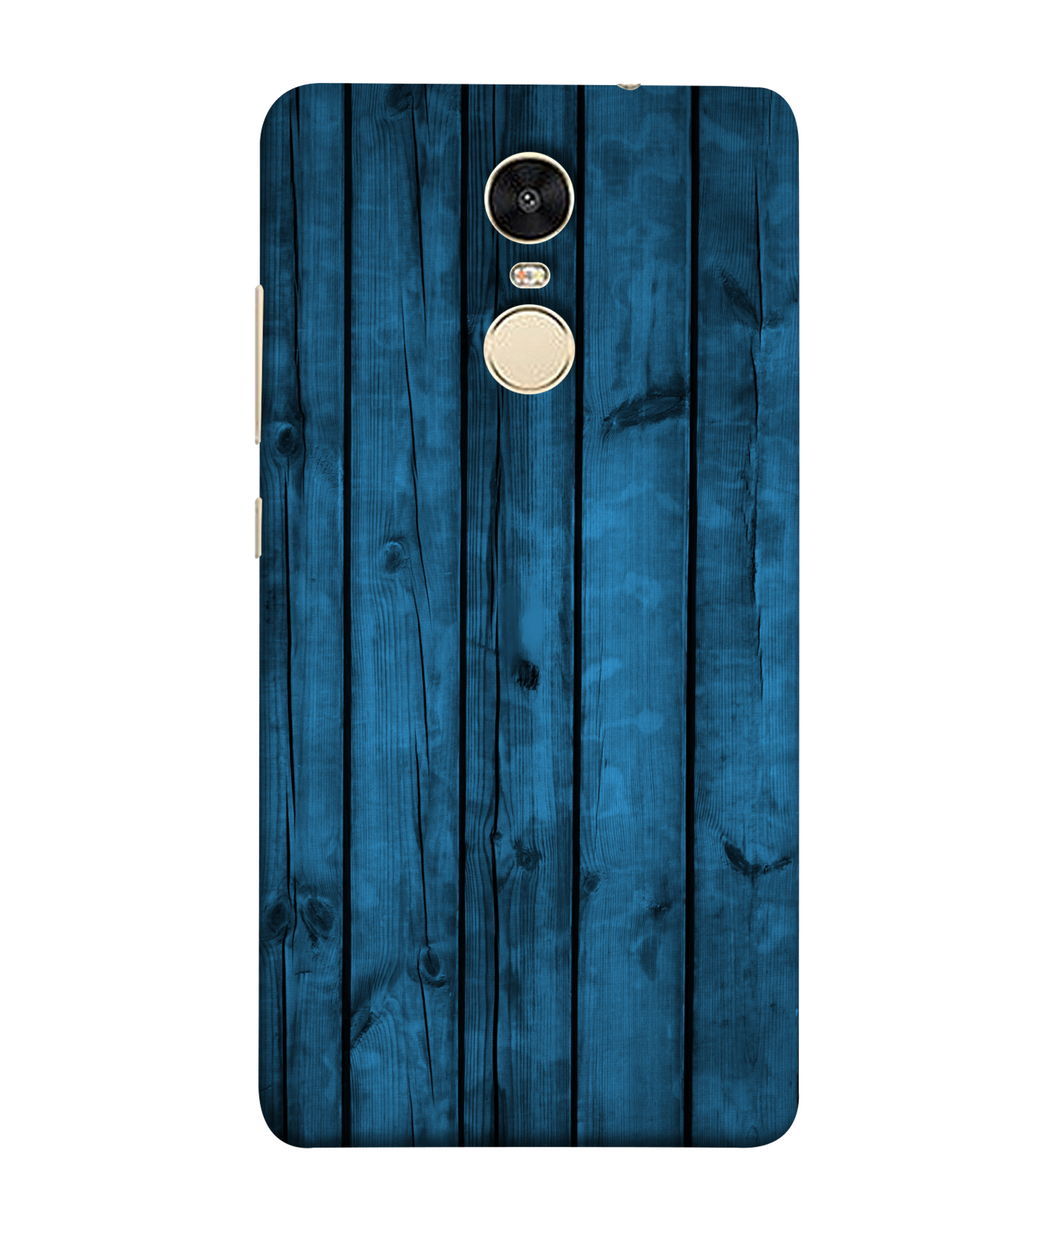 Redmi Note 5 Blue Wood mobile cover